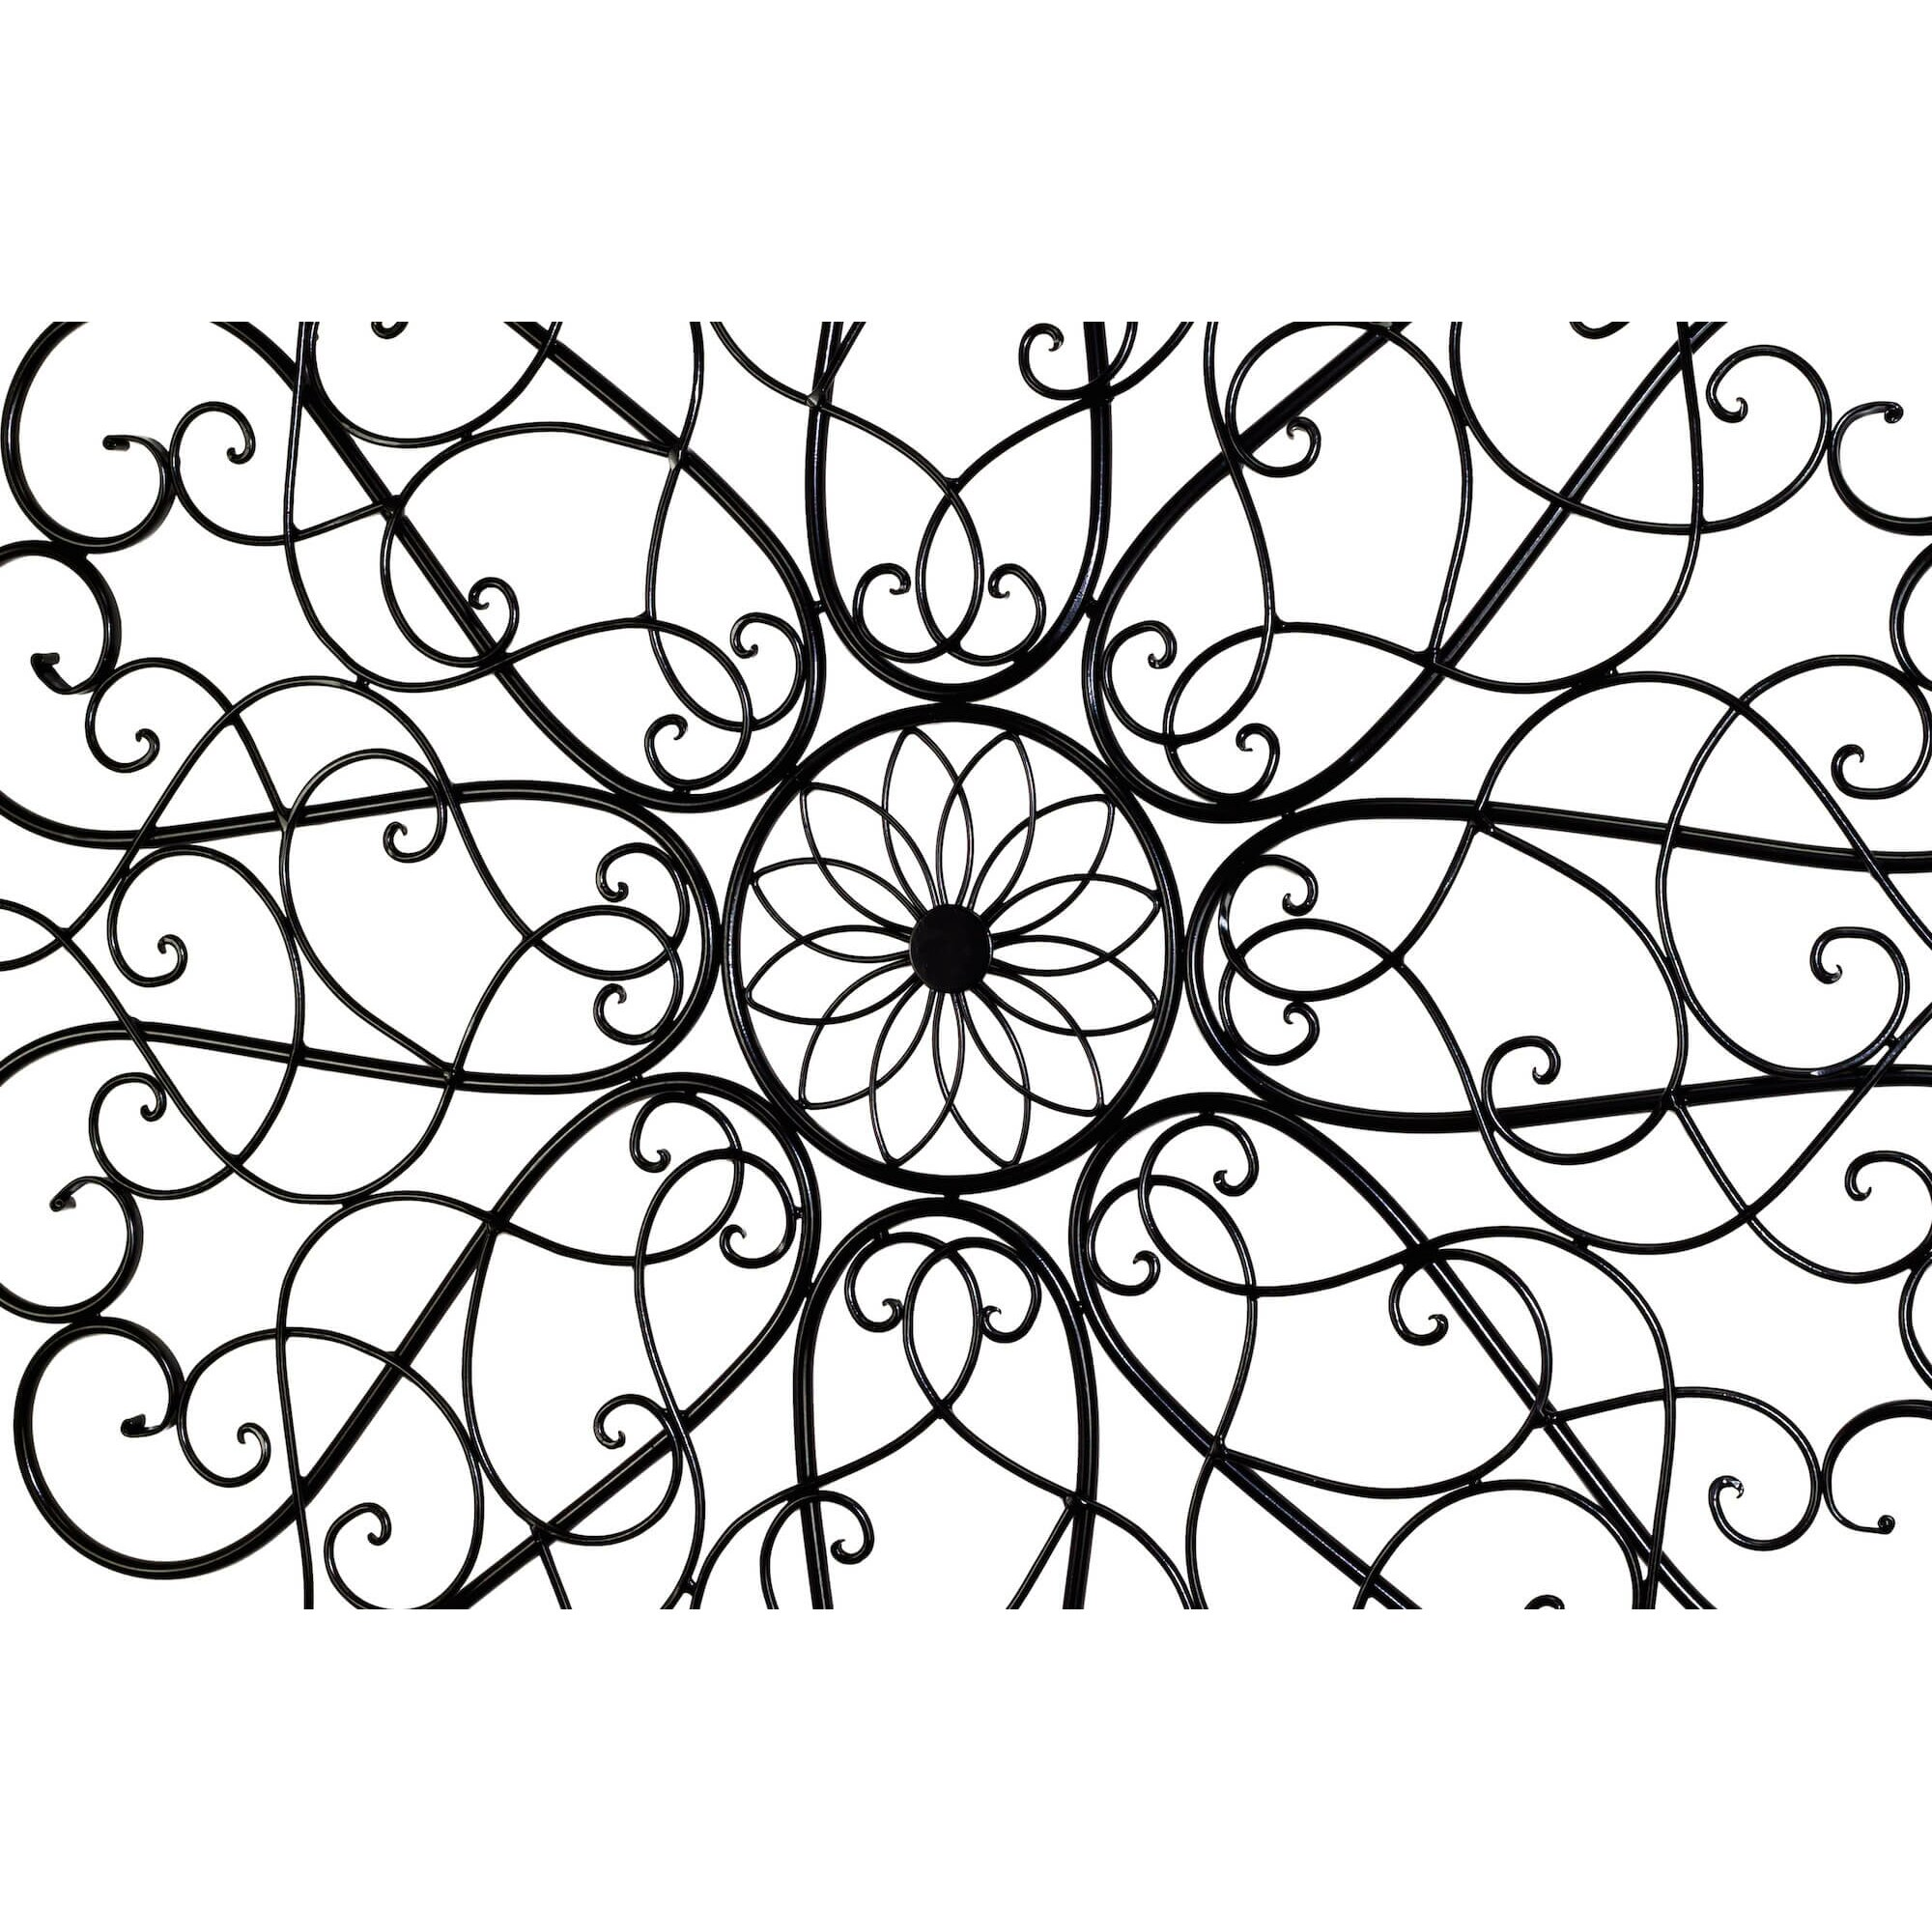 Round Iron Scroll Wall Decor 13GM1345 7 pin wiring roslonek net,7 Pin Rv Plug Wiring Diagram